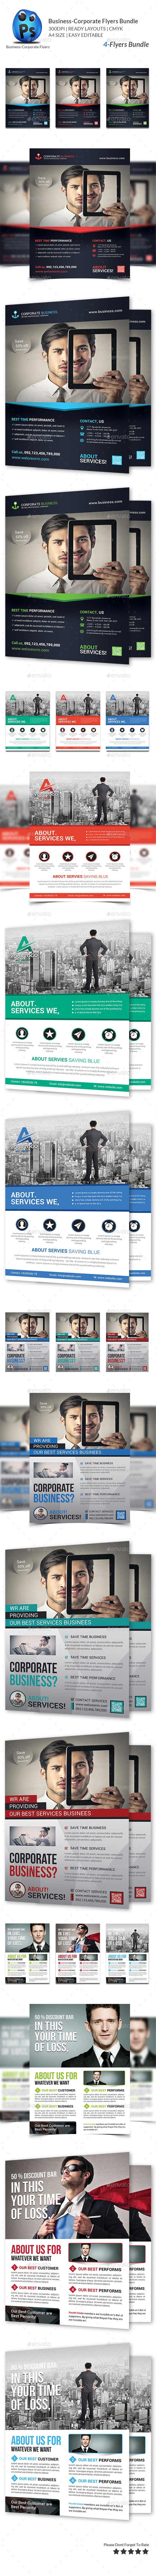 GraphicRiver Corporate Business 4 Flyer Bundle 10118272